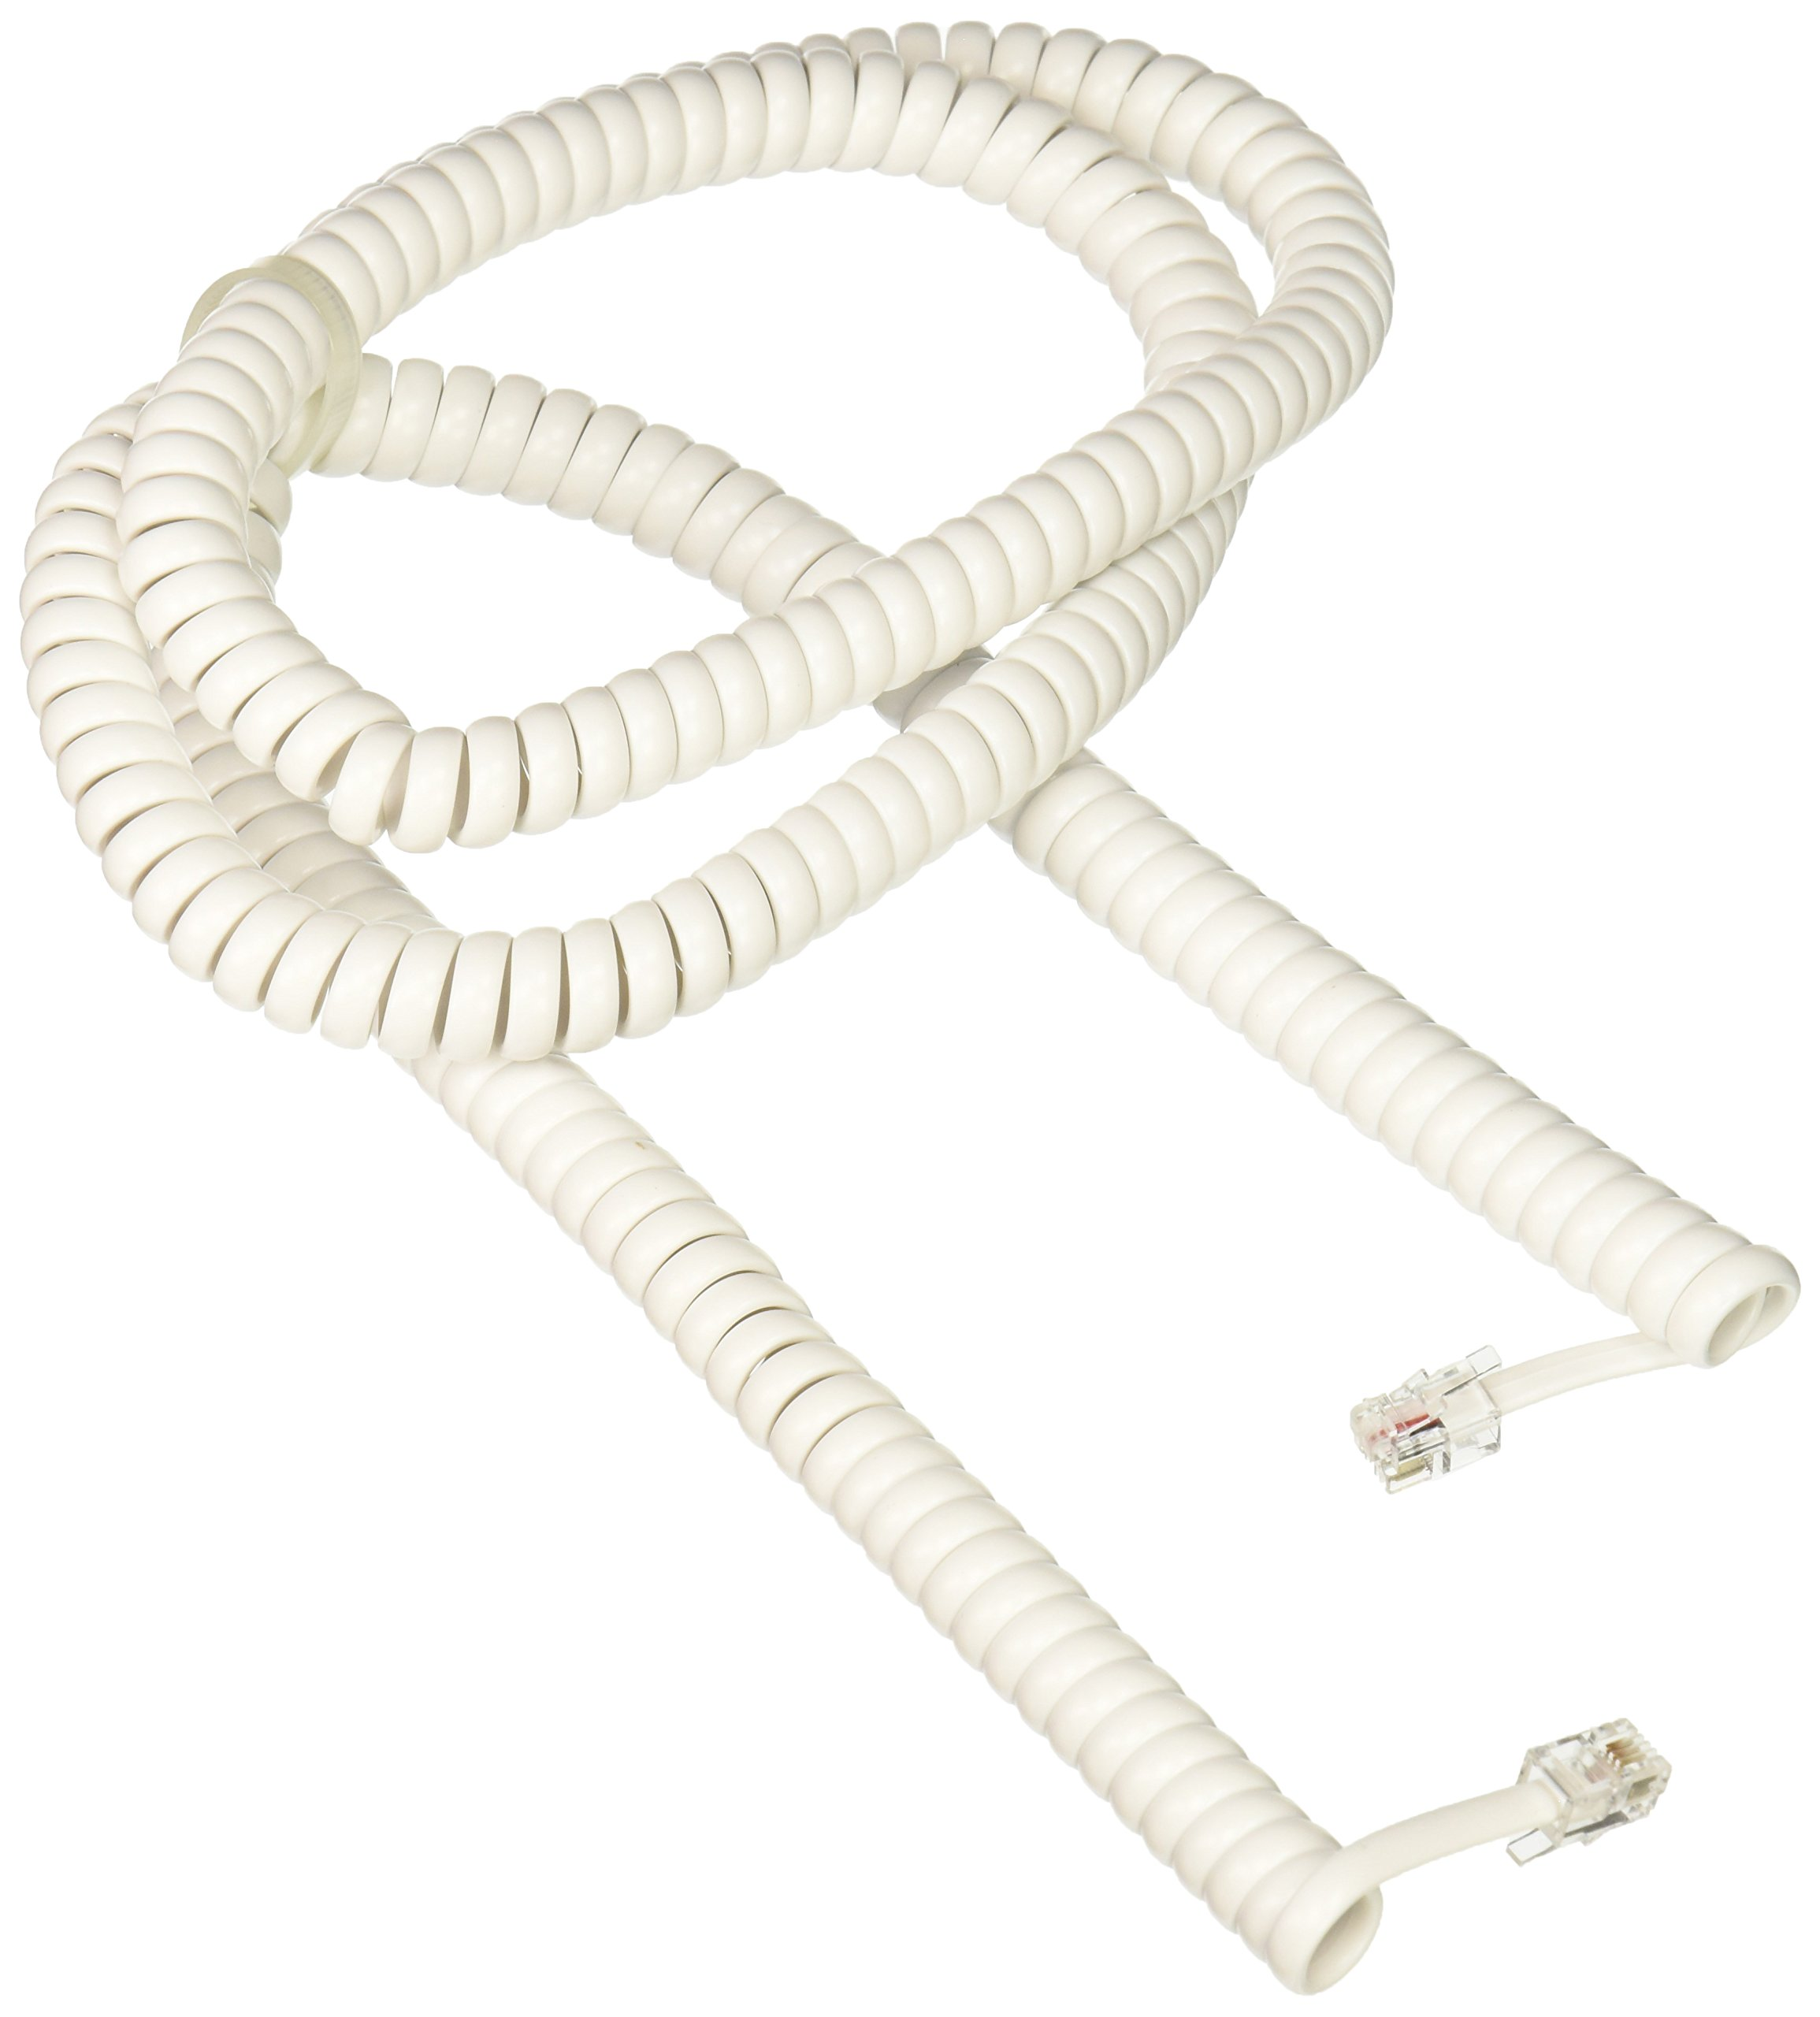 Ge Telephone Handset Receiver Cord Phone Cable Extra Length Home Office 25ft Computers/tablets & Networking